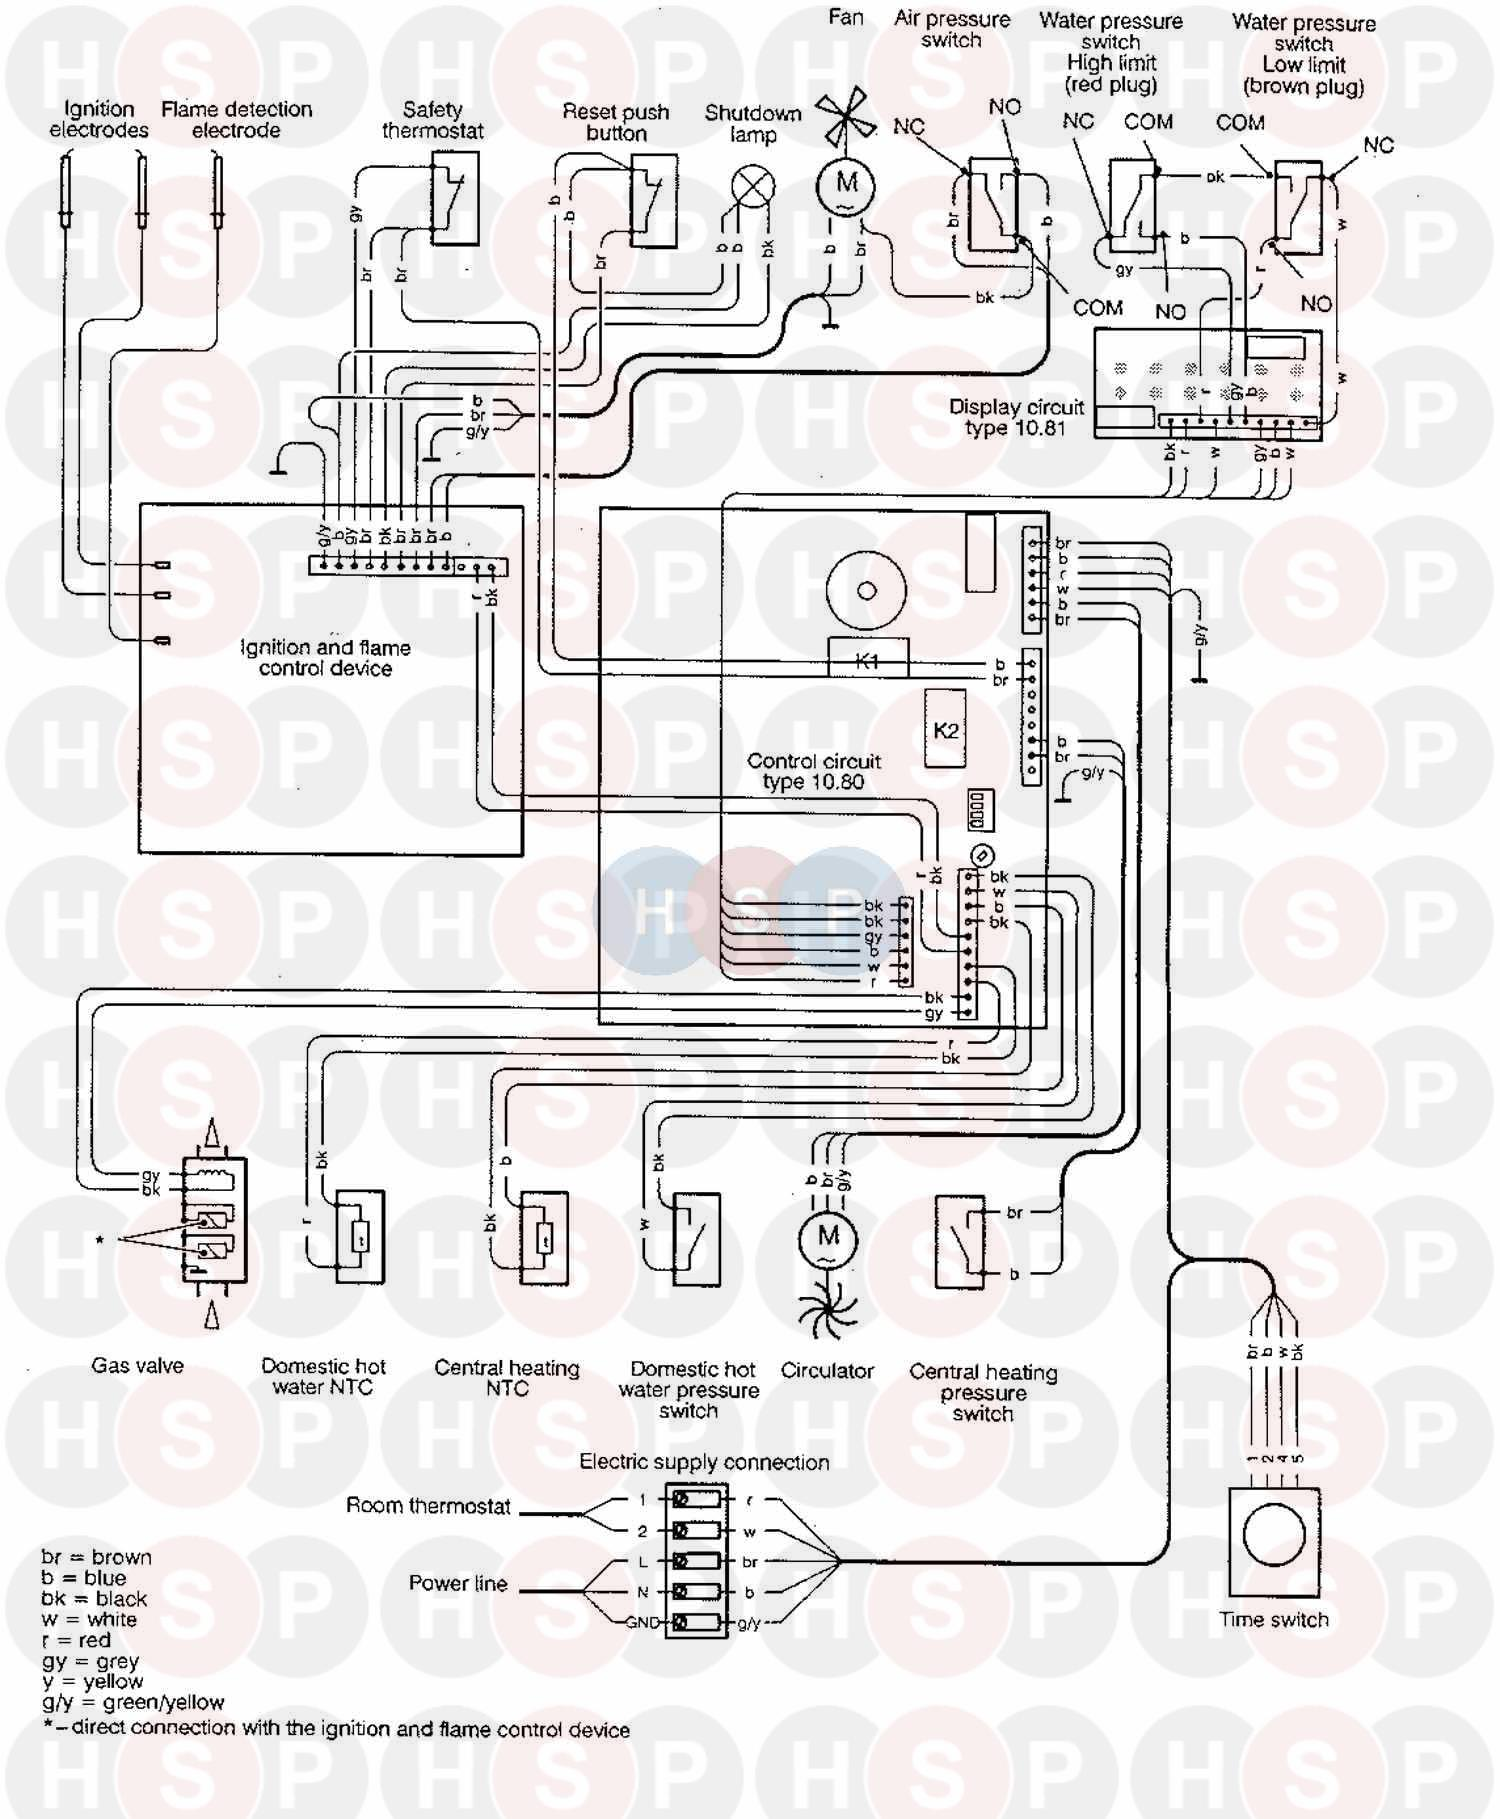 Biasi Savio Gaia 424s 2001 Wiring Diagram Heating Hot Water Click The To Open It On A New Page